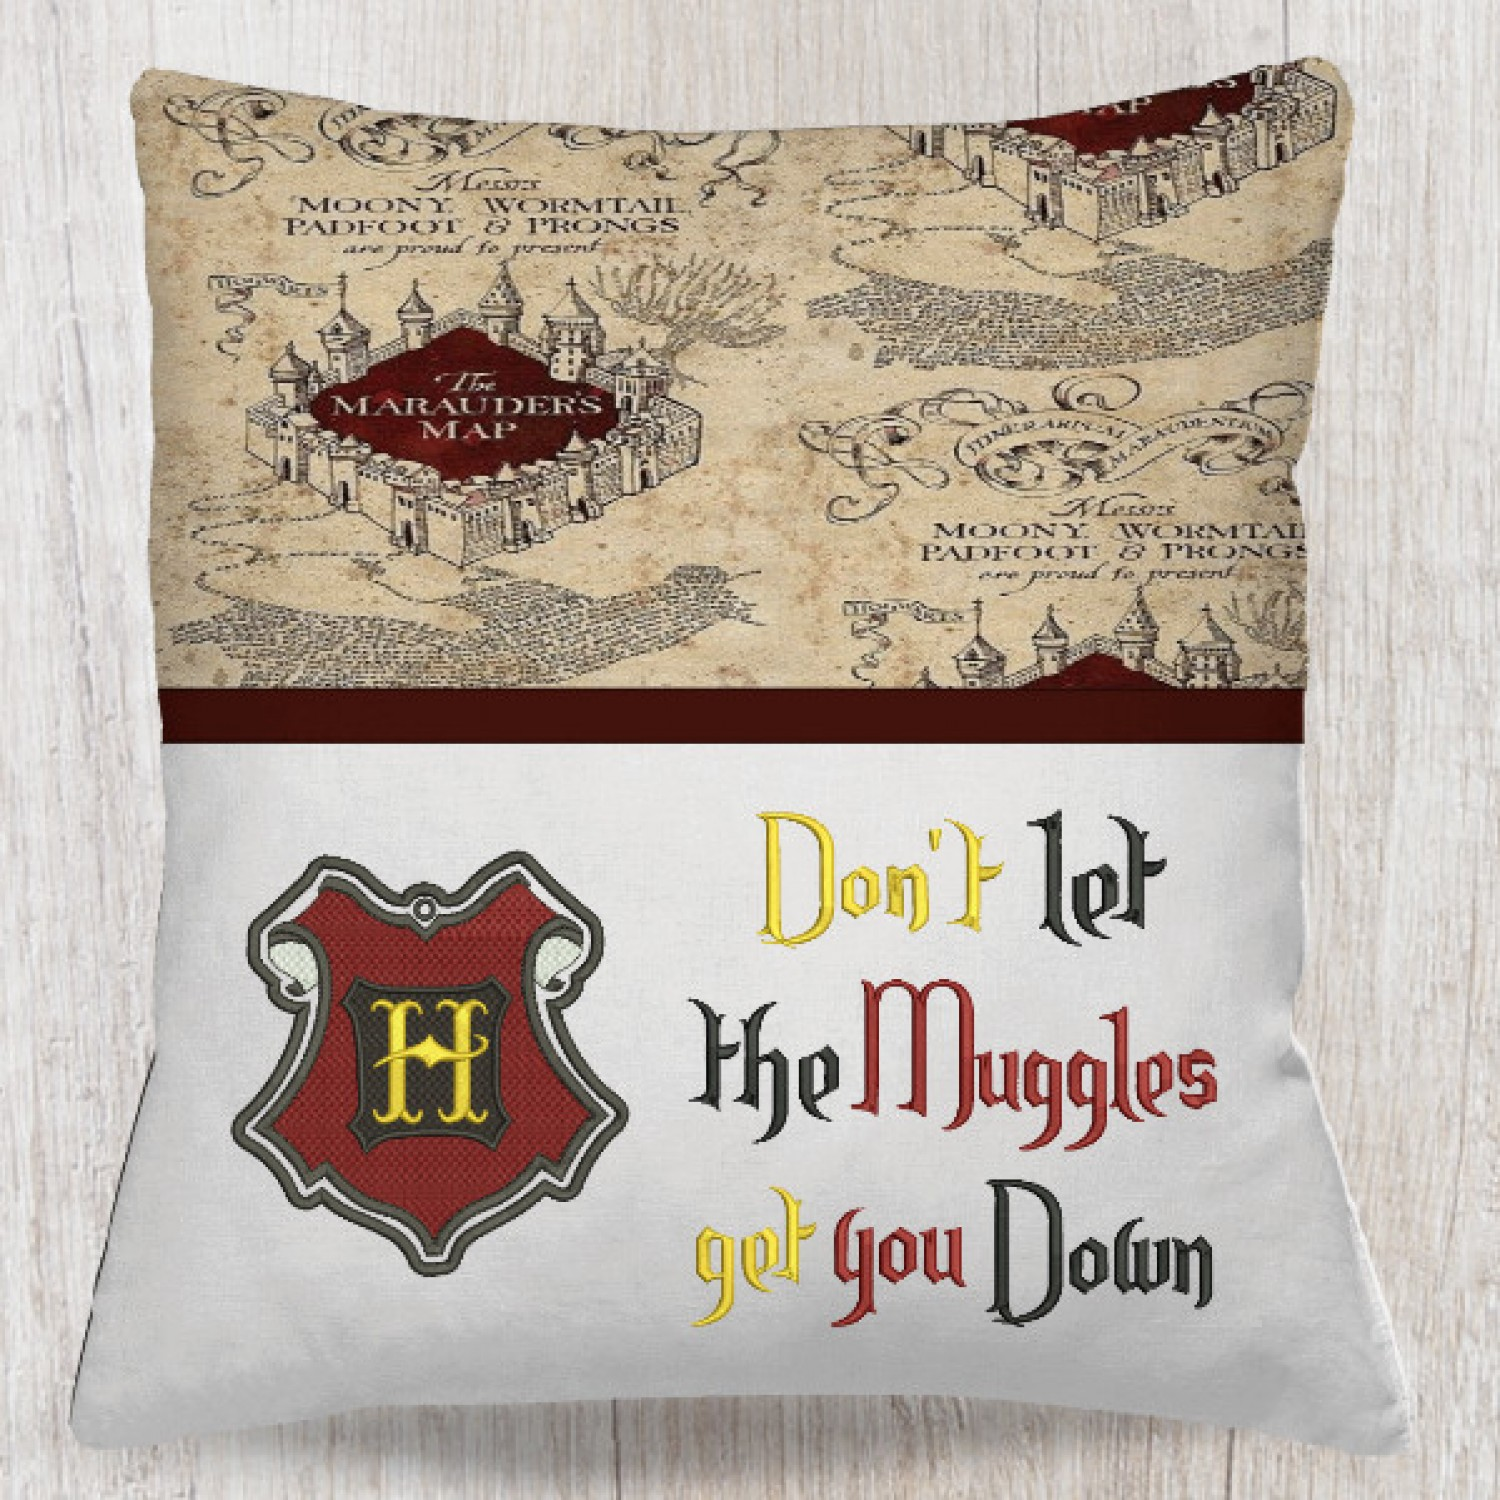 Hogwarts with Don't let